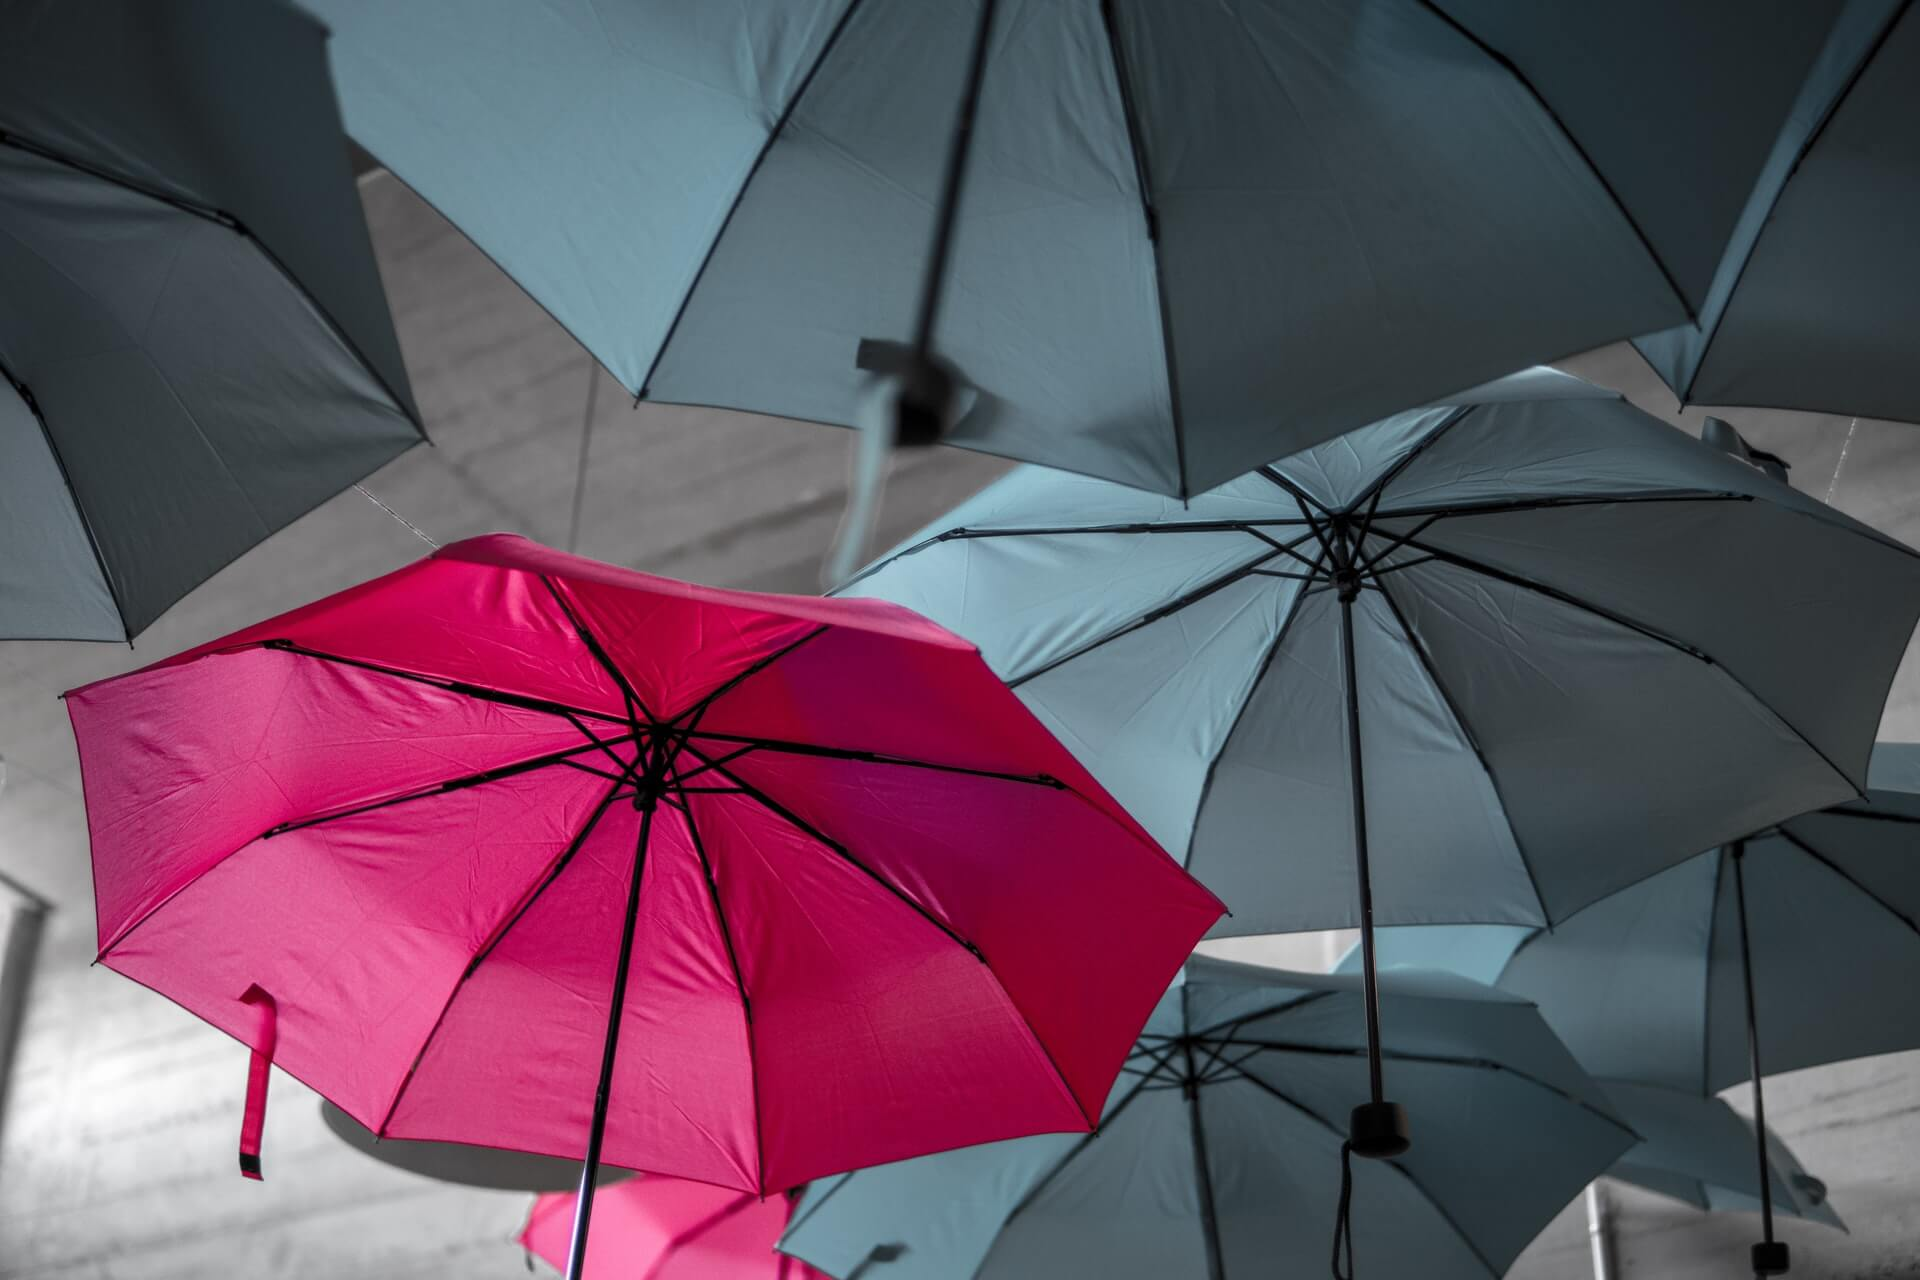 A red umbrella standing out amongst other grey umbrellas